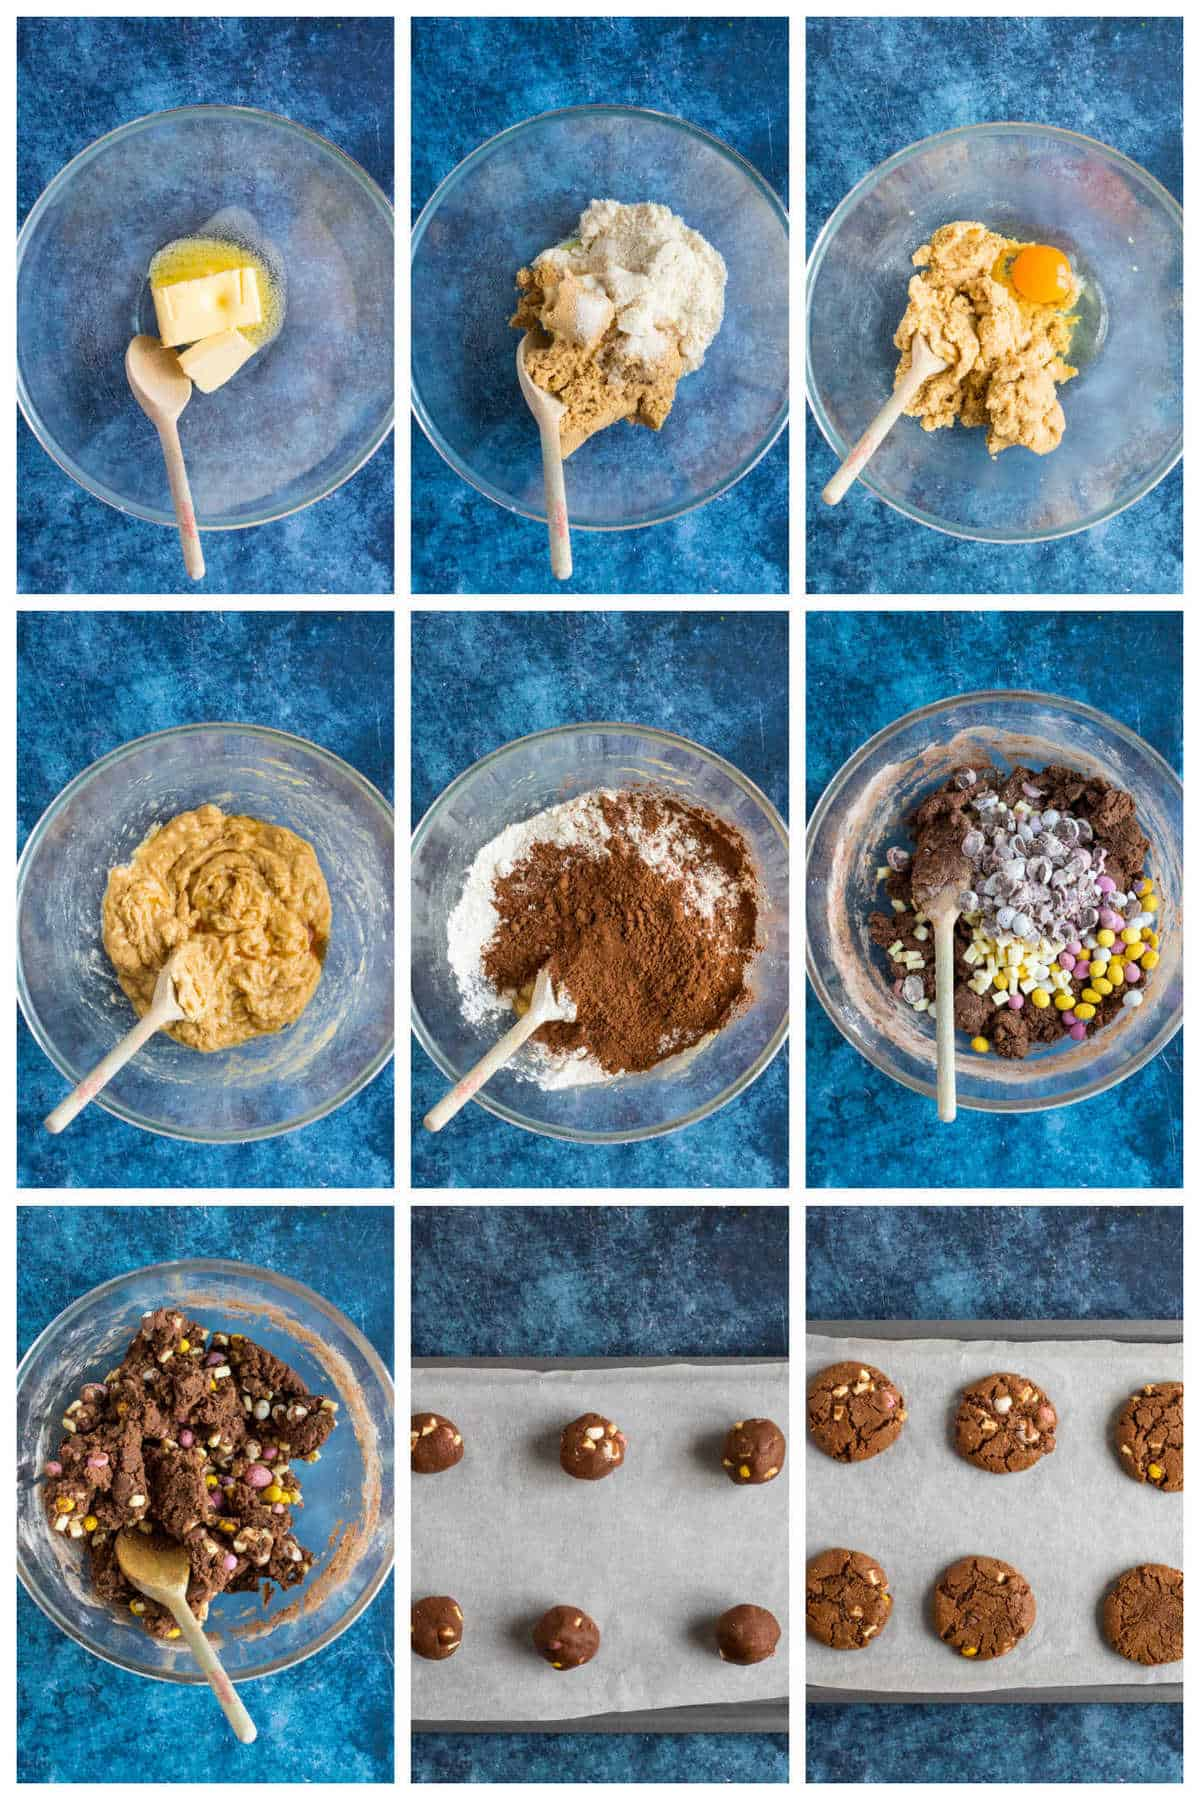 Step by step photo instructions for making mini egg cookies.